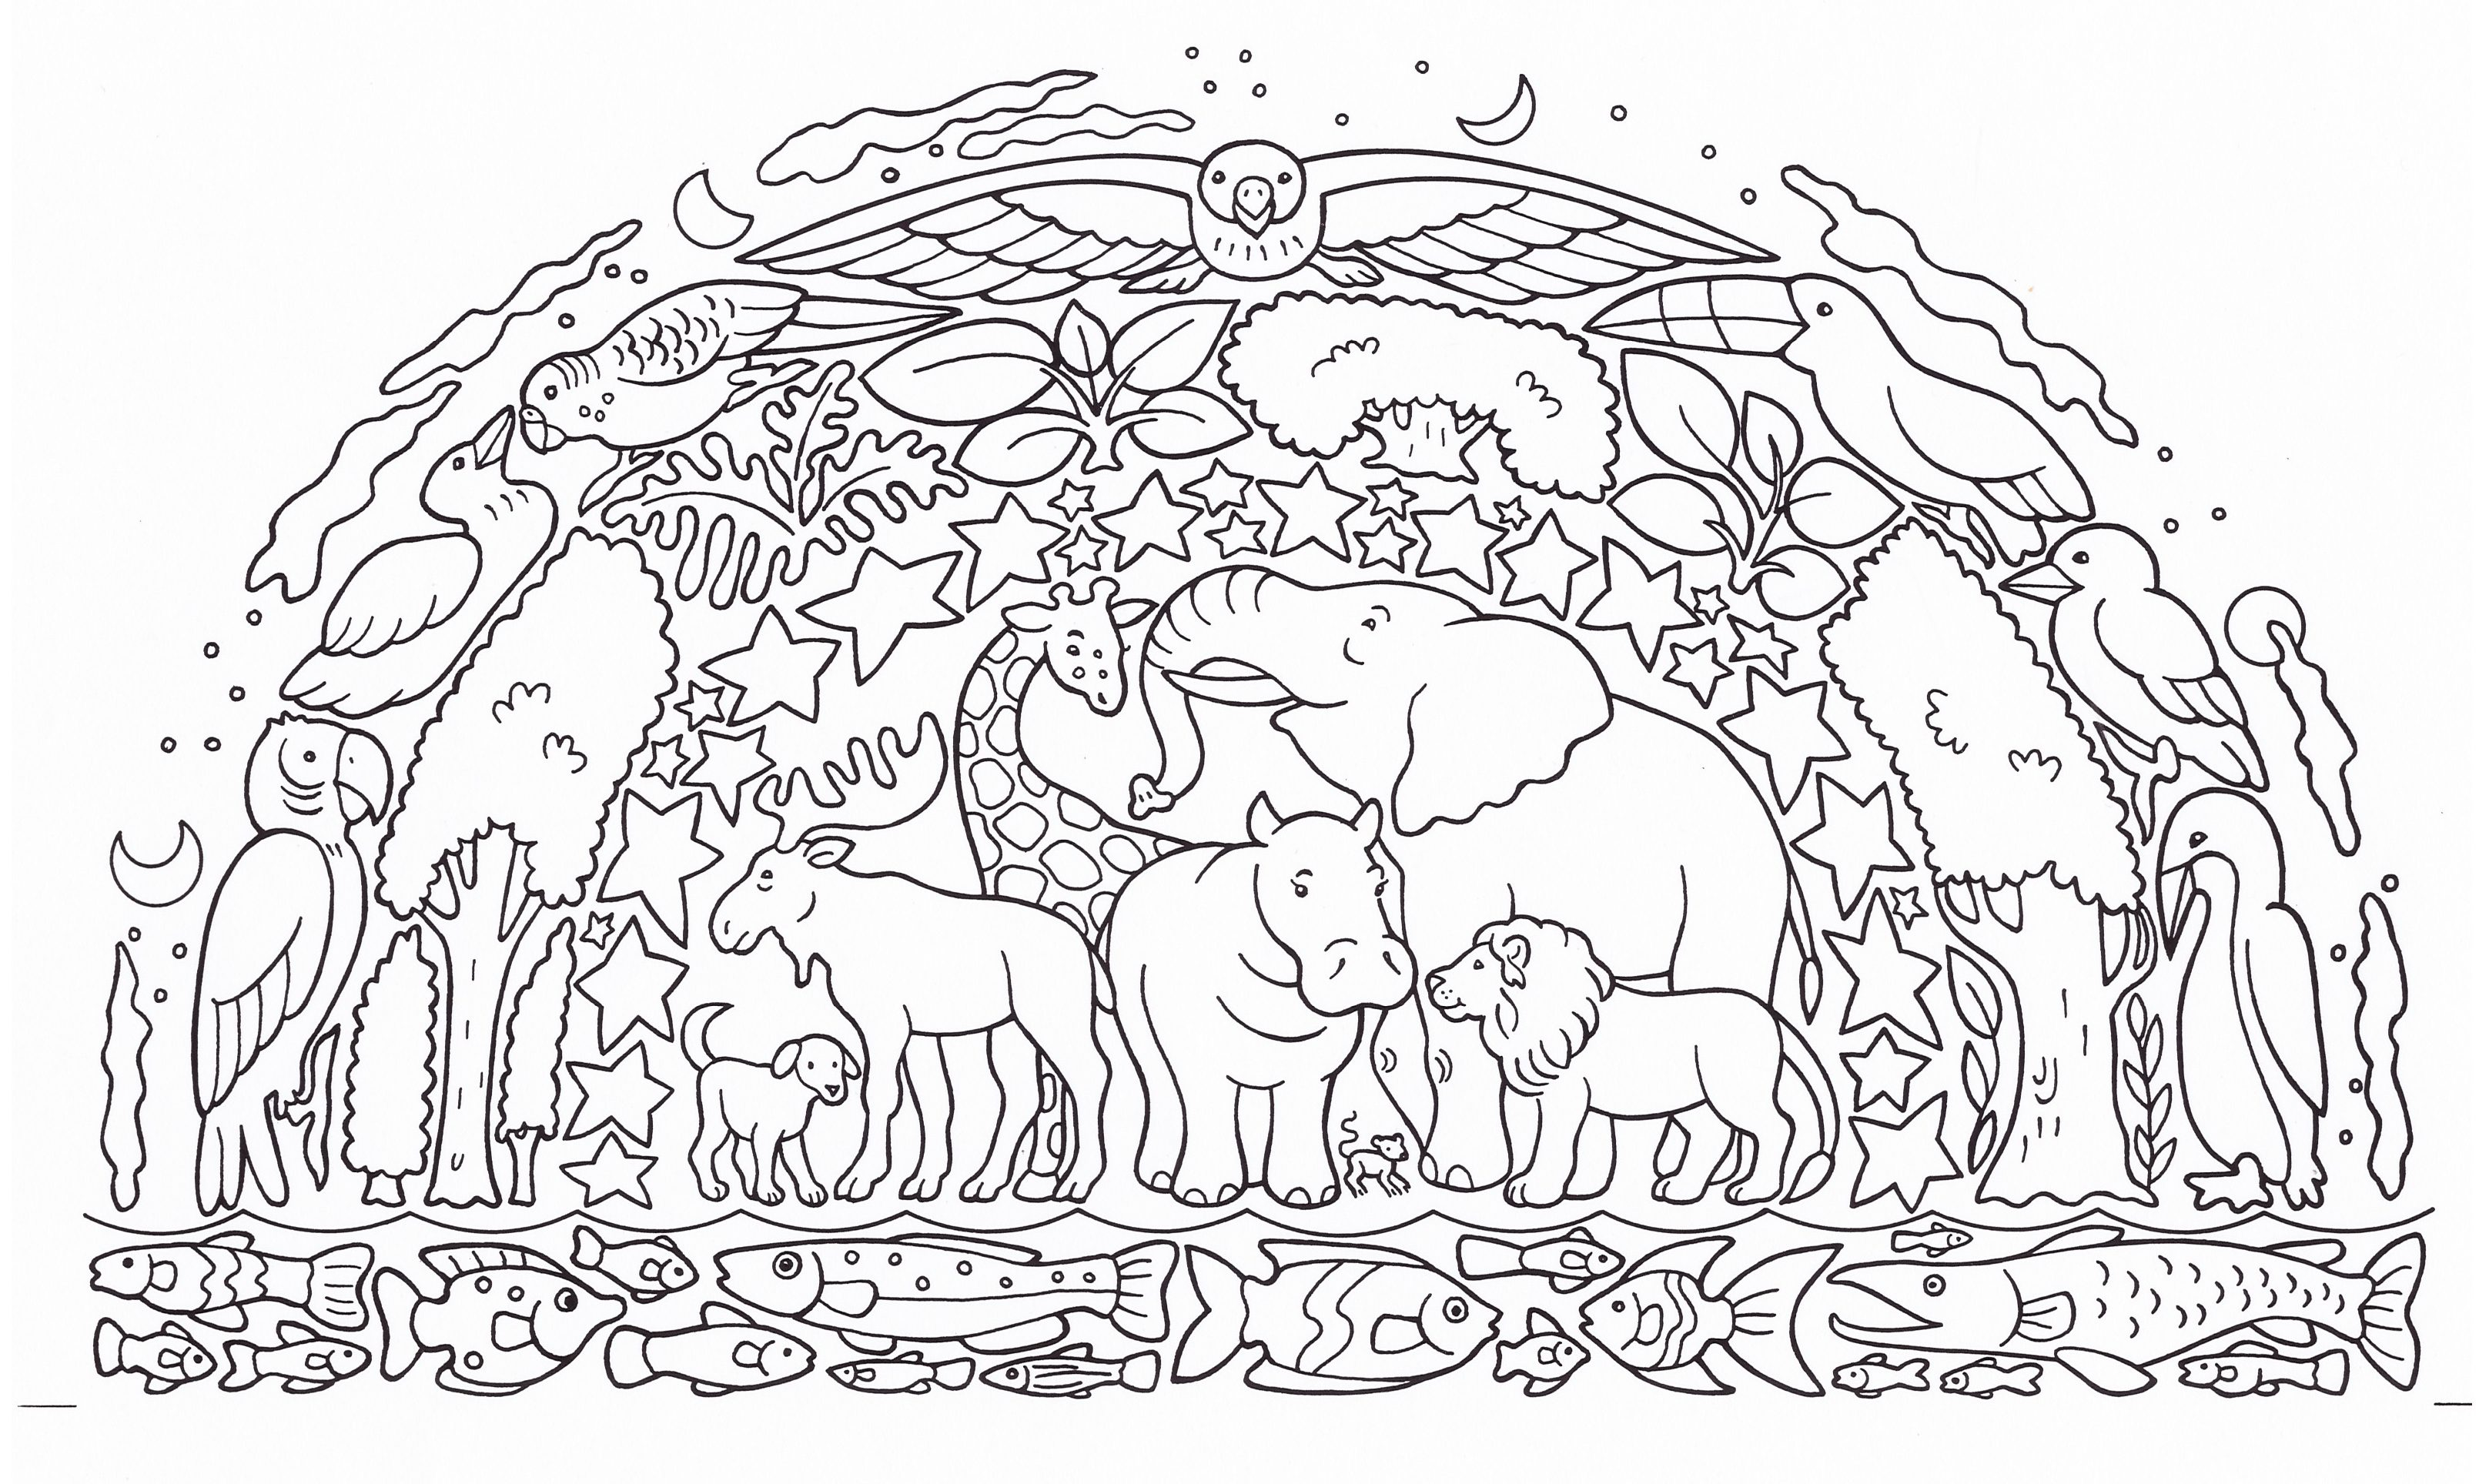 Black and white illustration in a dome with layers of animals, fish, trees and stars